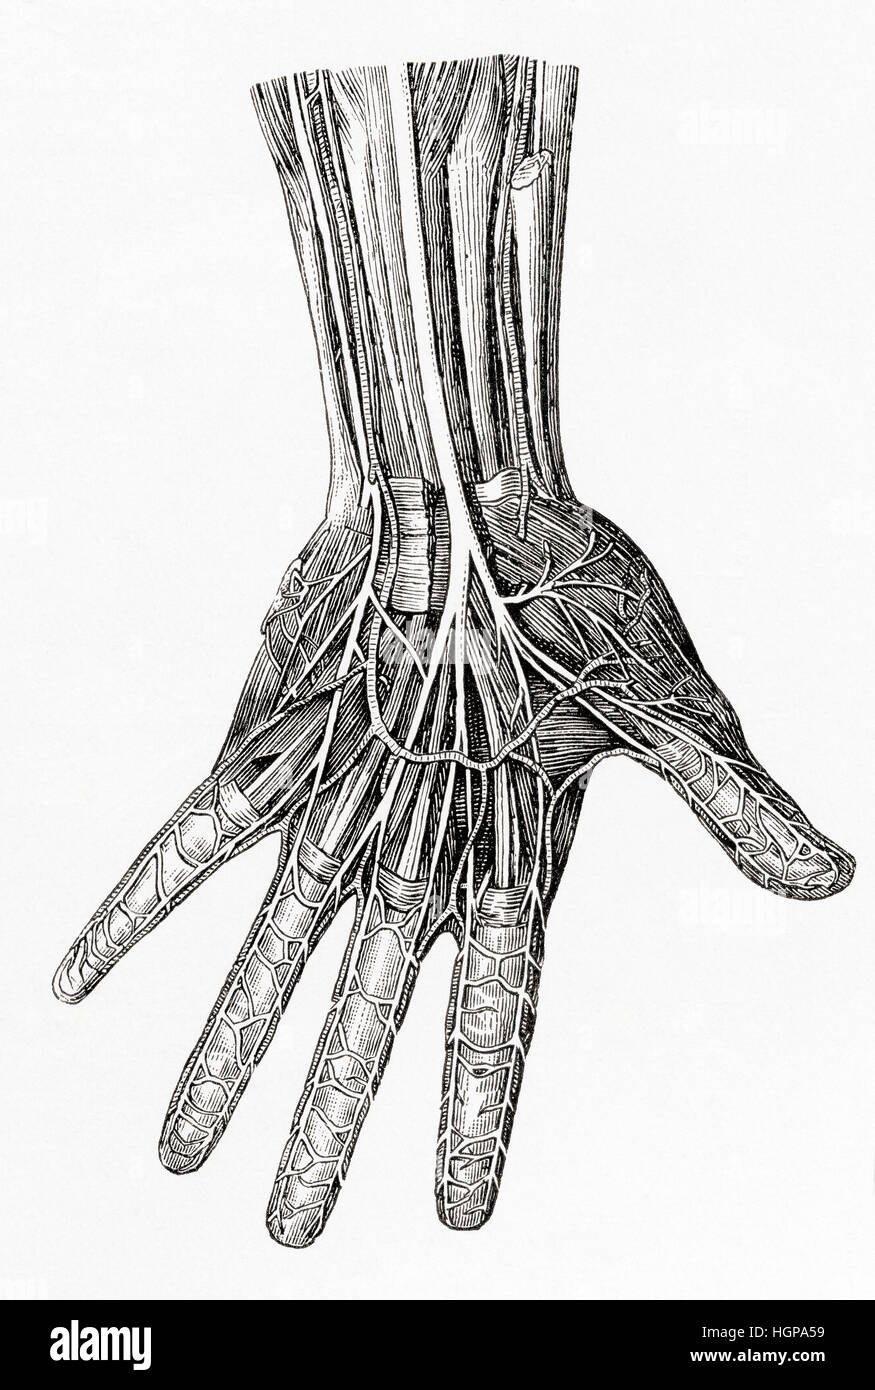 Diagram showing the nerves of the human hand.  From Meyers Lexicon, published 1924. - Stock Image